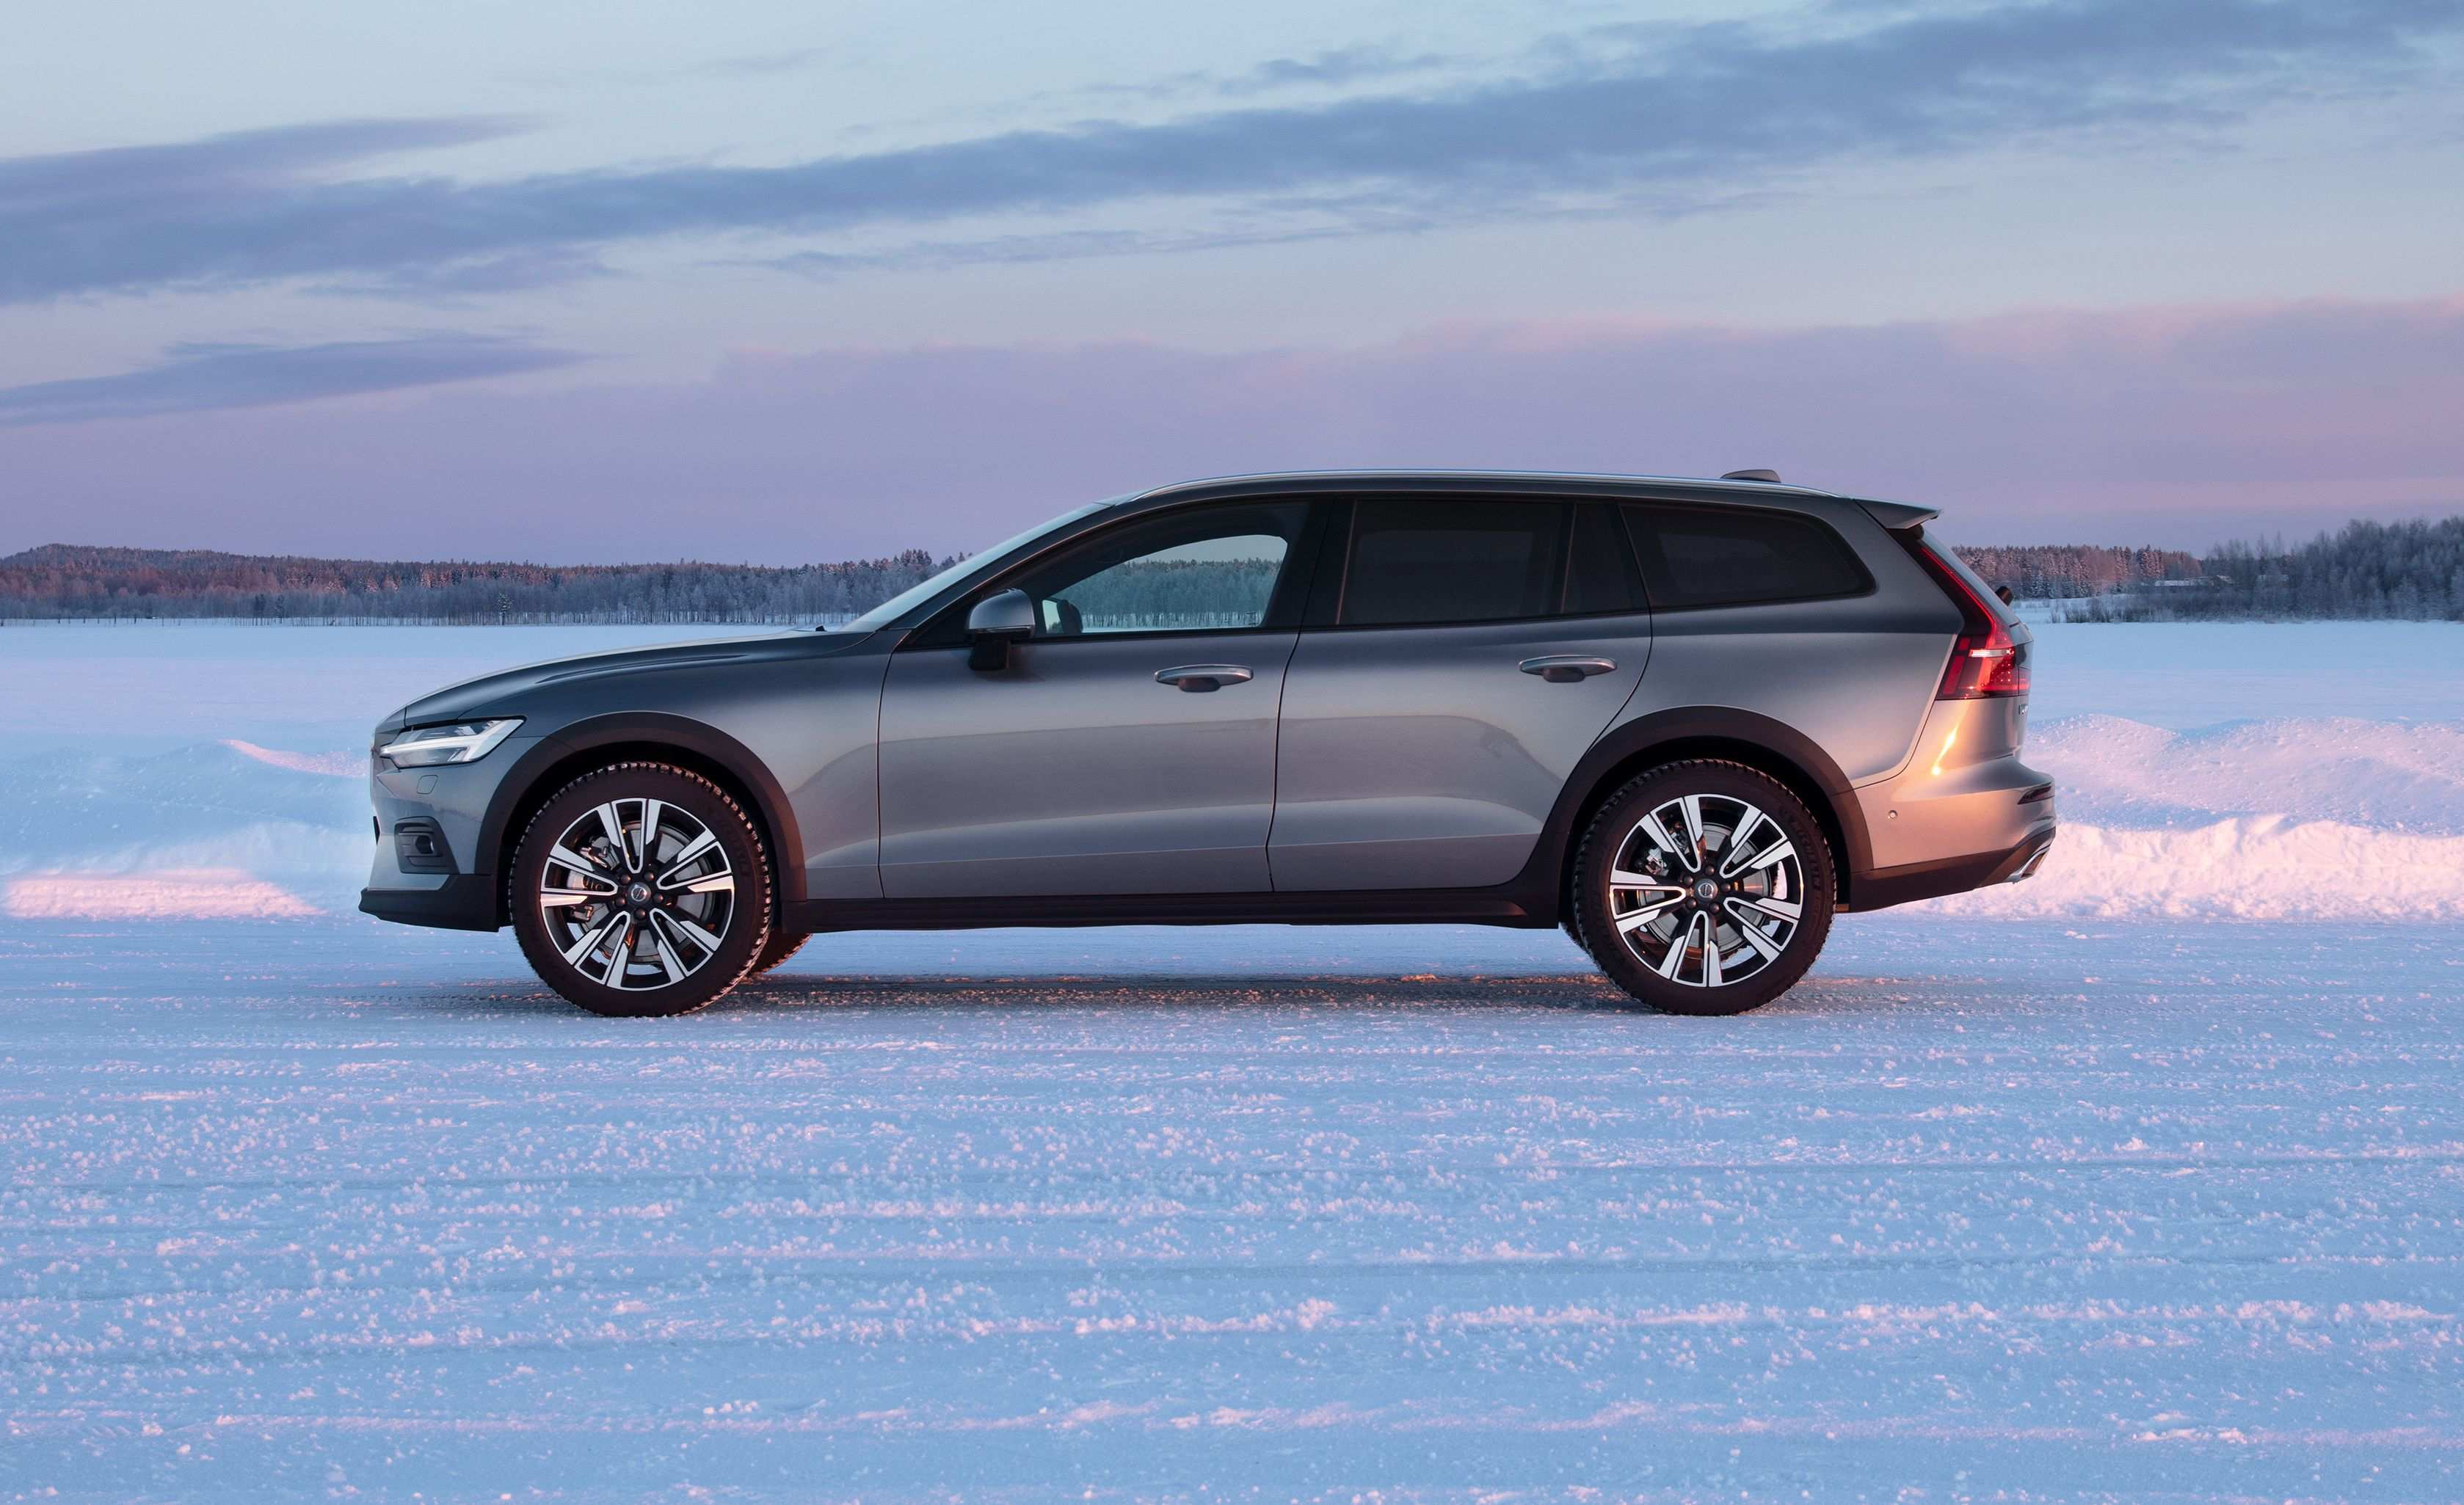 17 All New Volvo Wagon 2020 Exterior